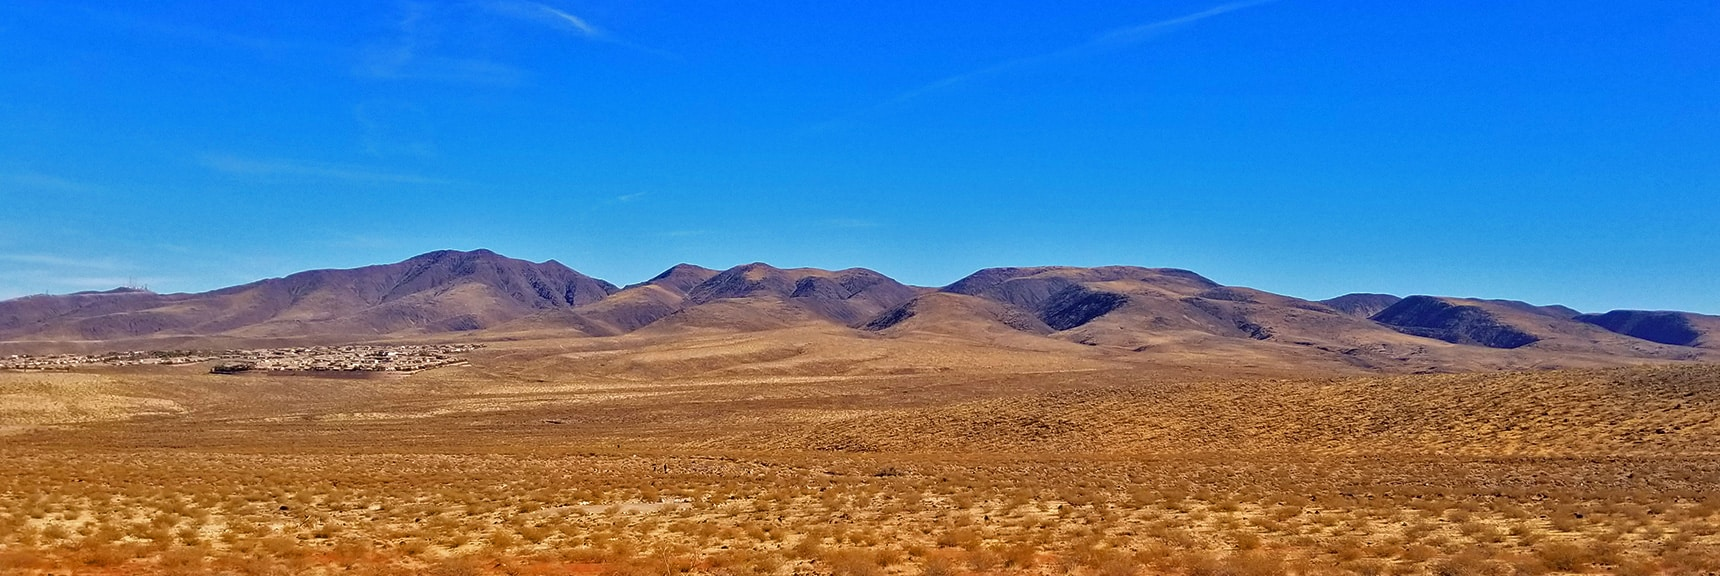 McCullough Hills Volcanic Area from Trailhead | Petroglyph Canyon | Sloan Canyon National Conservation Area, Nevada